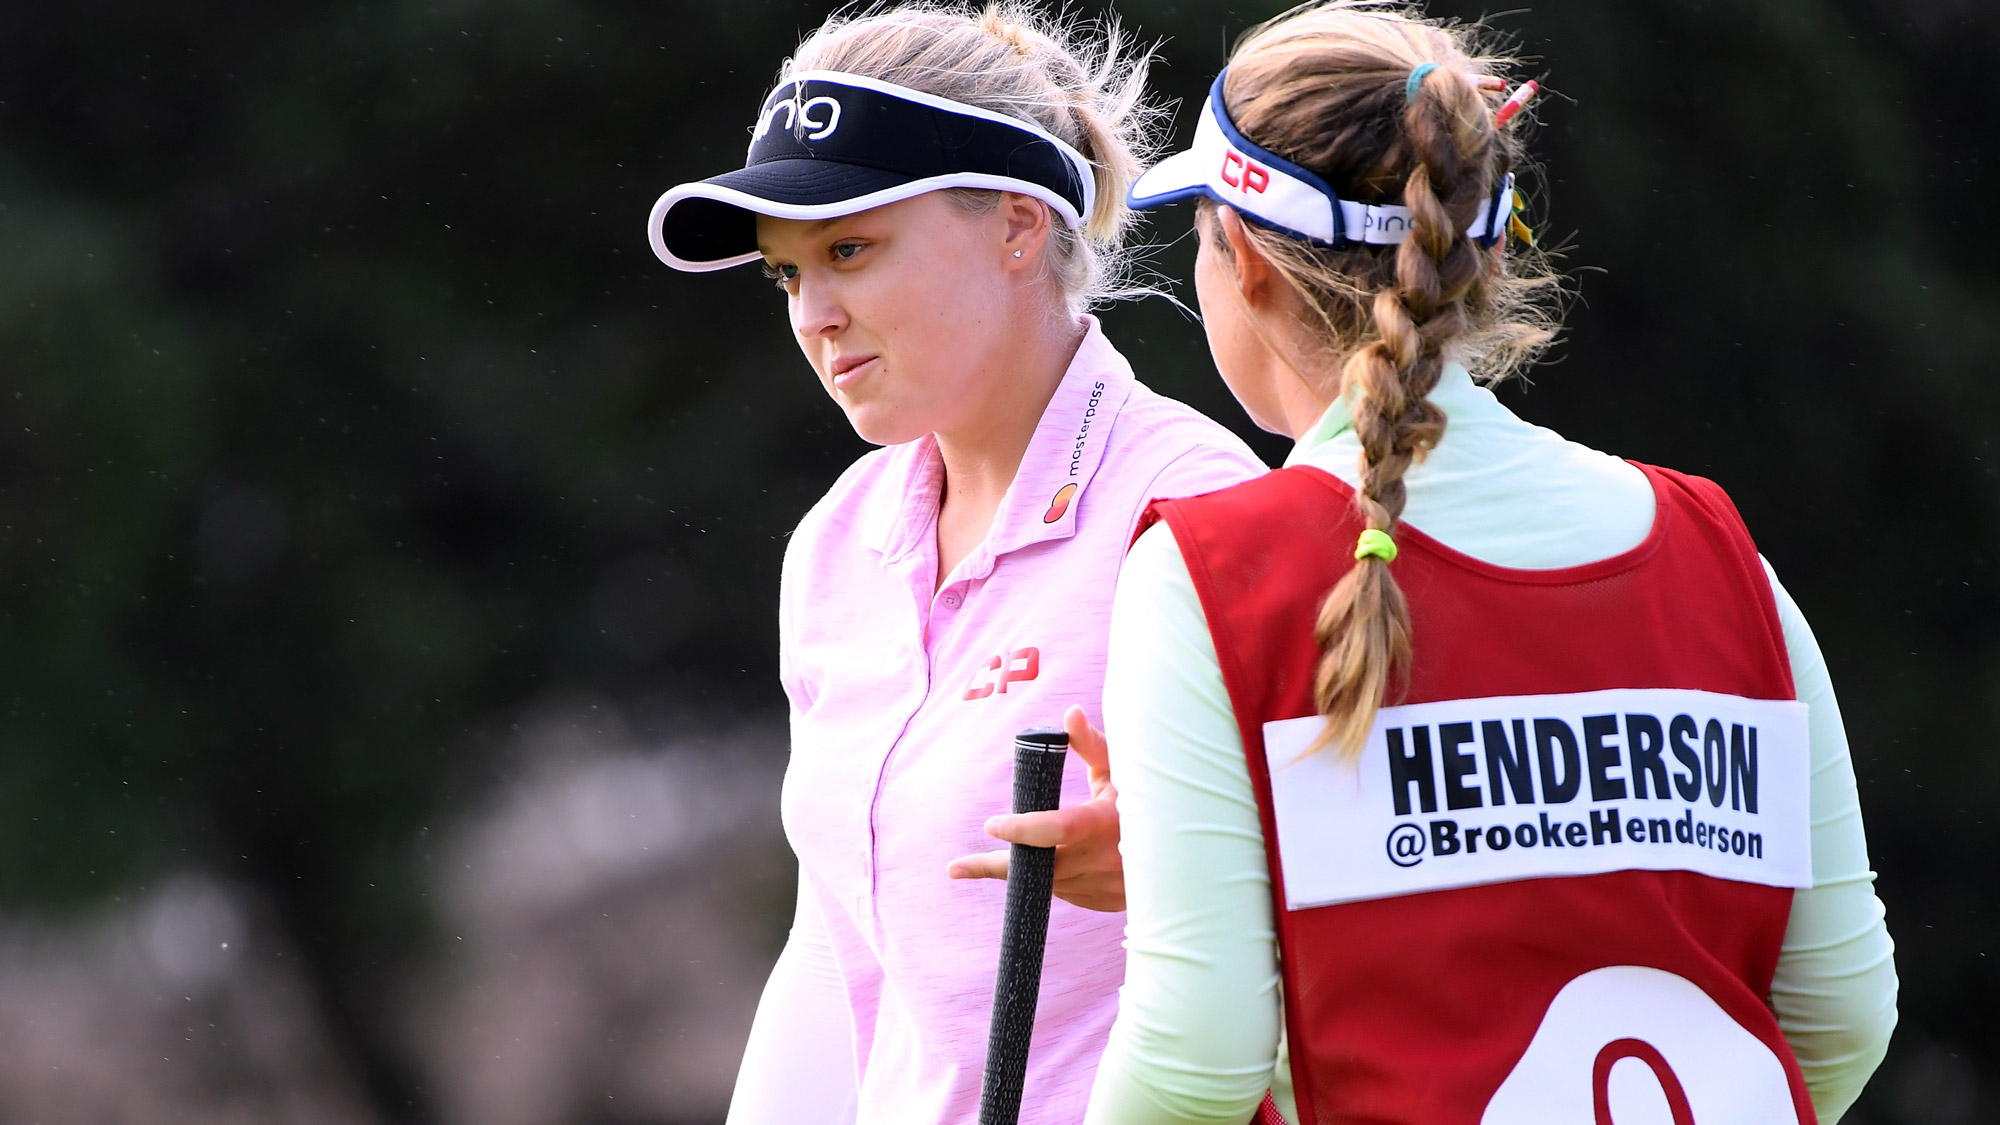 Canada's Brooke Henderson soars to four-shot victory at LPGA Lotte Championship